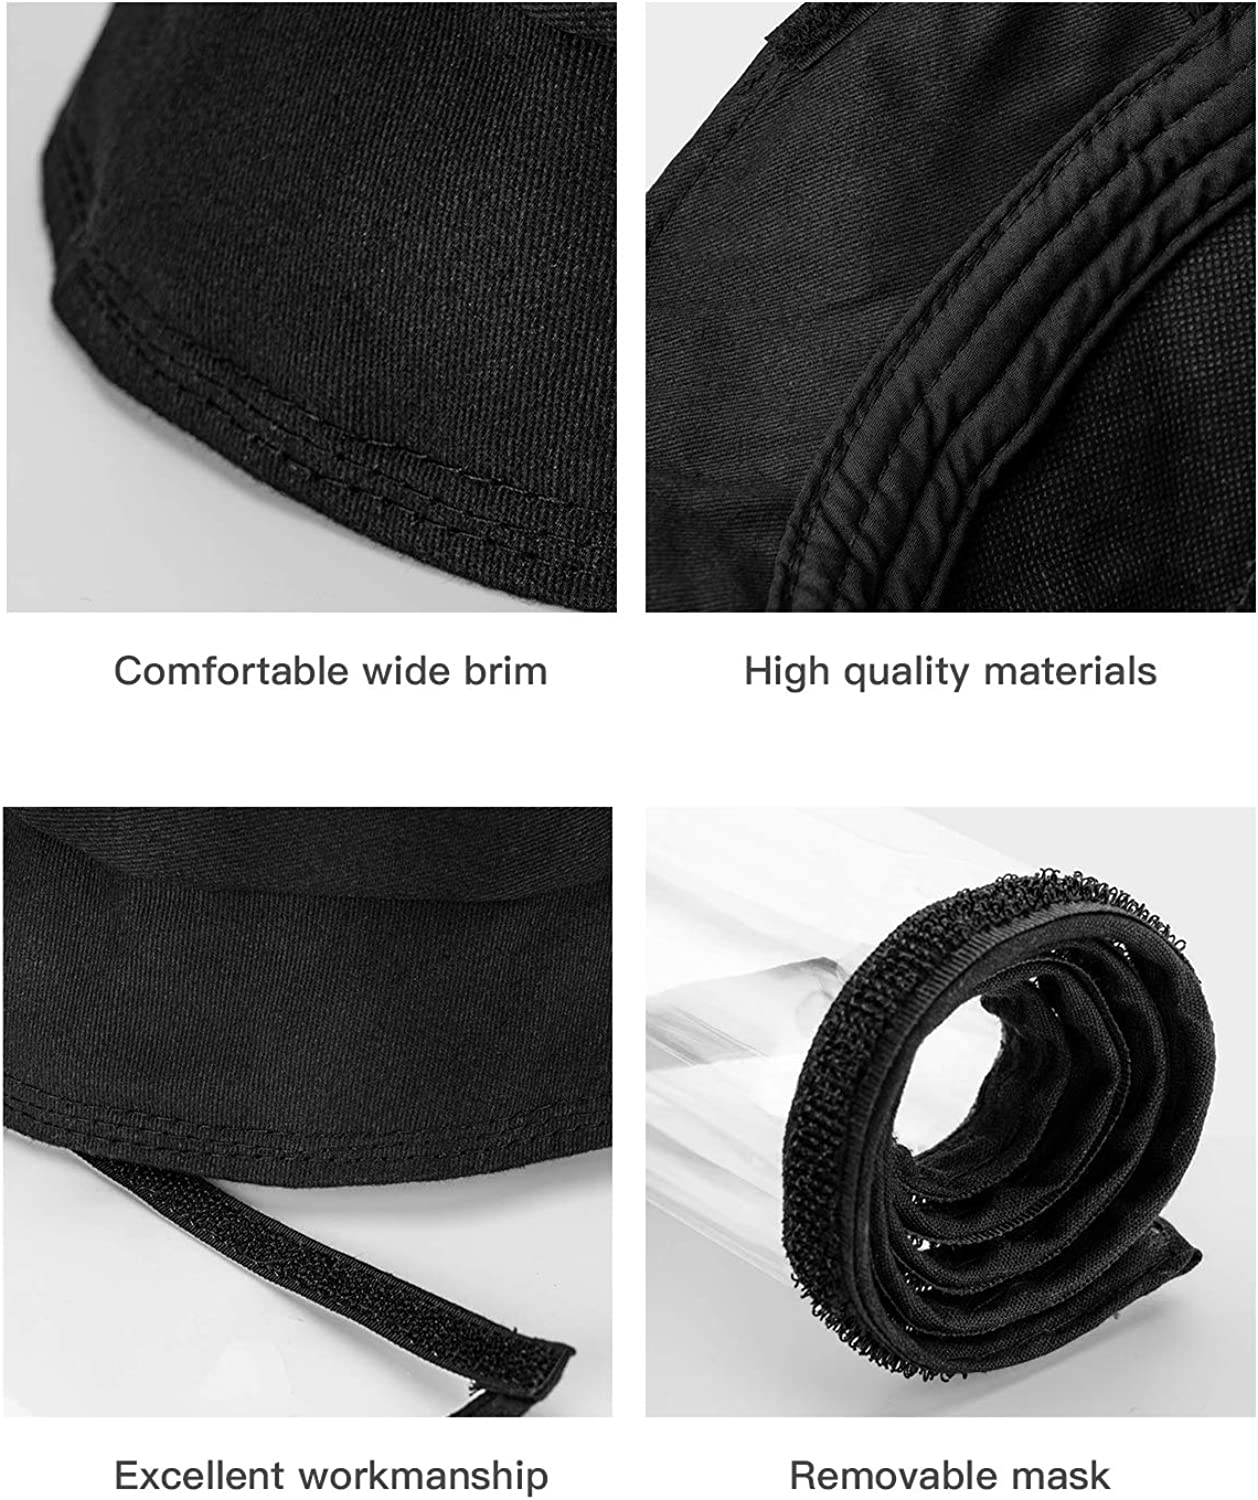 Fulin Protective Face Shield Cover Hat Anti Spitting and Anti Saliva Fog Dust UV Sun Full Protective Hat Cover Outdoor Fisherman Hat for Women and Men Black